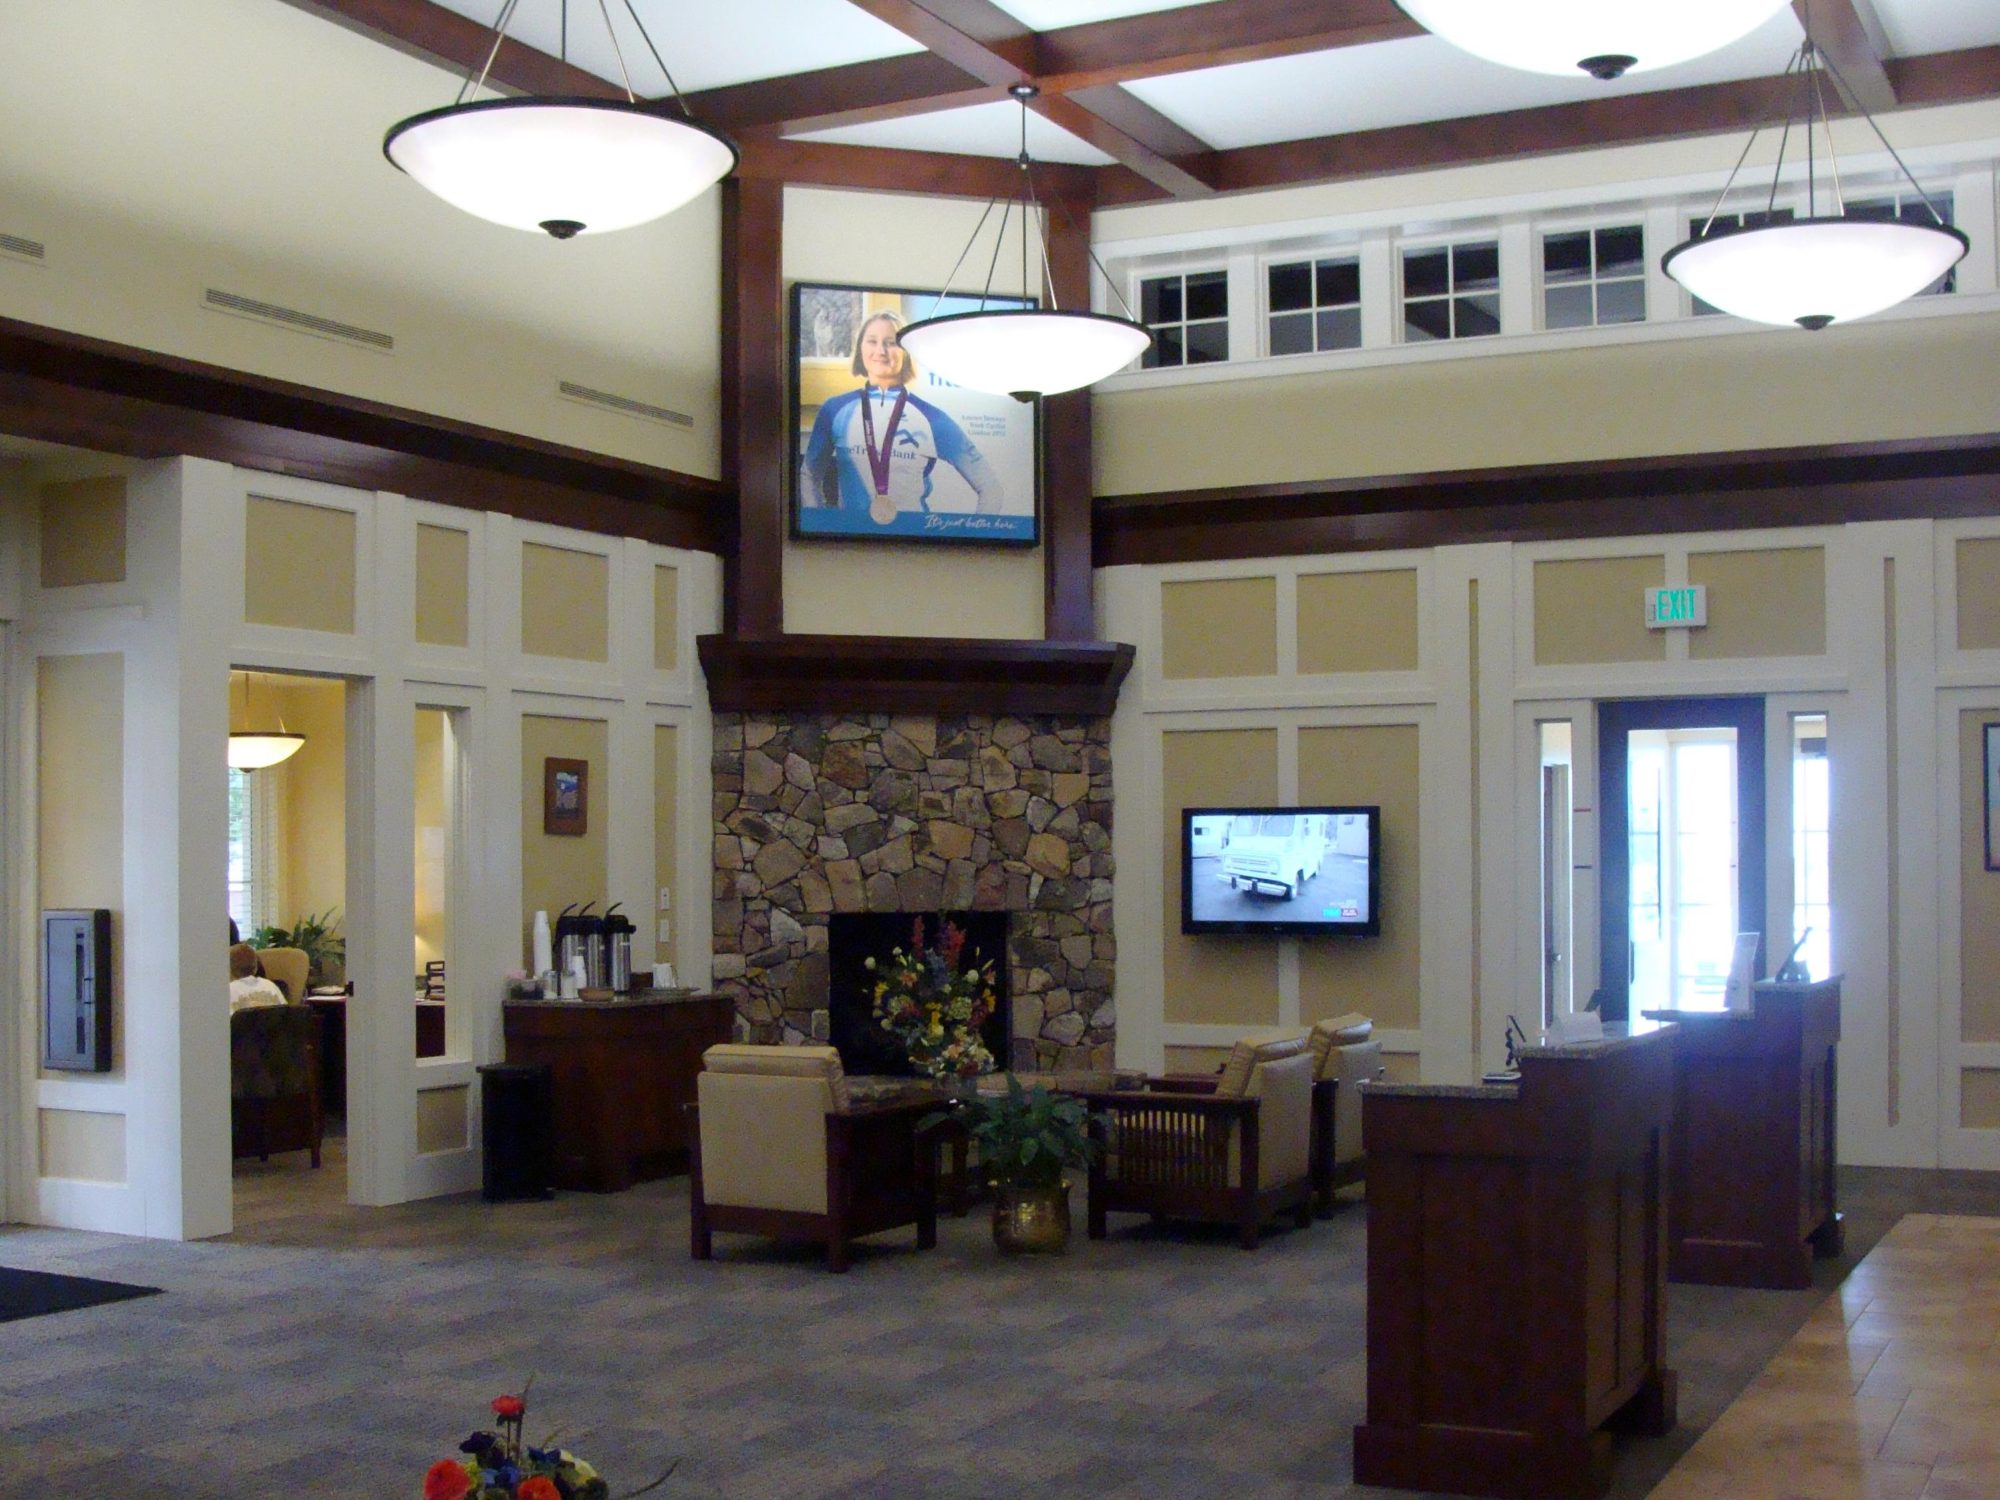 Lobby with Milliken Carpet Tile and St Timothy Lounge Chairs